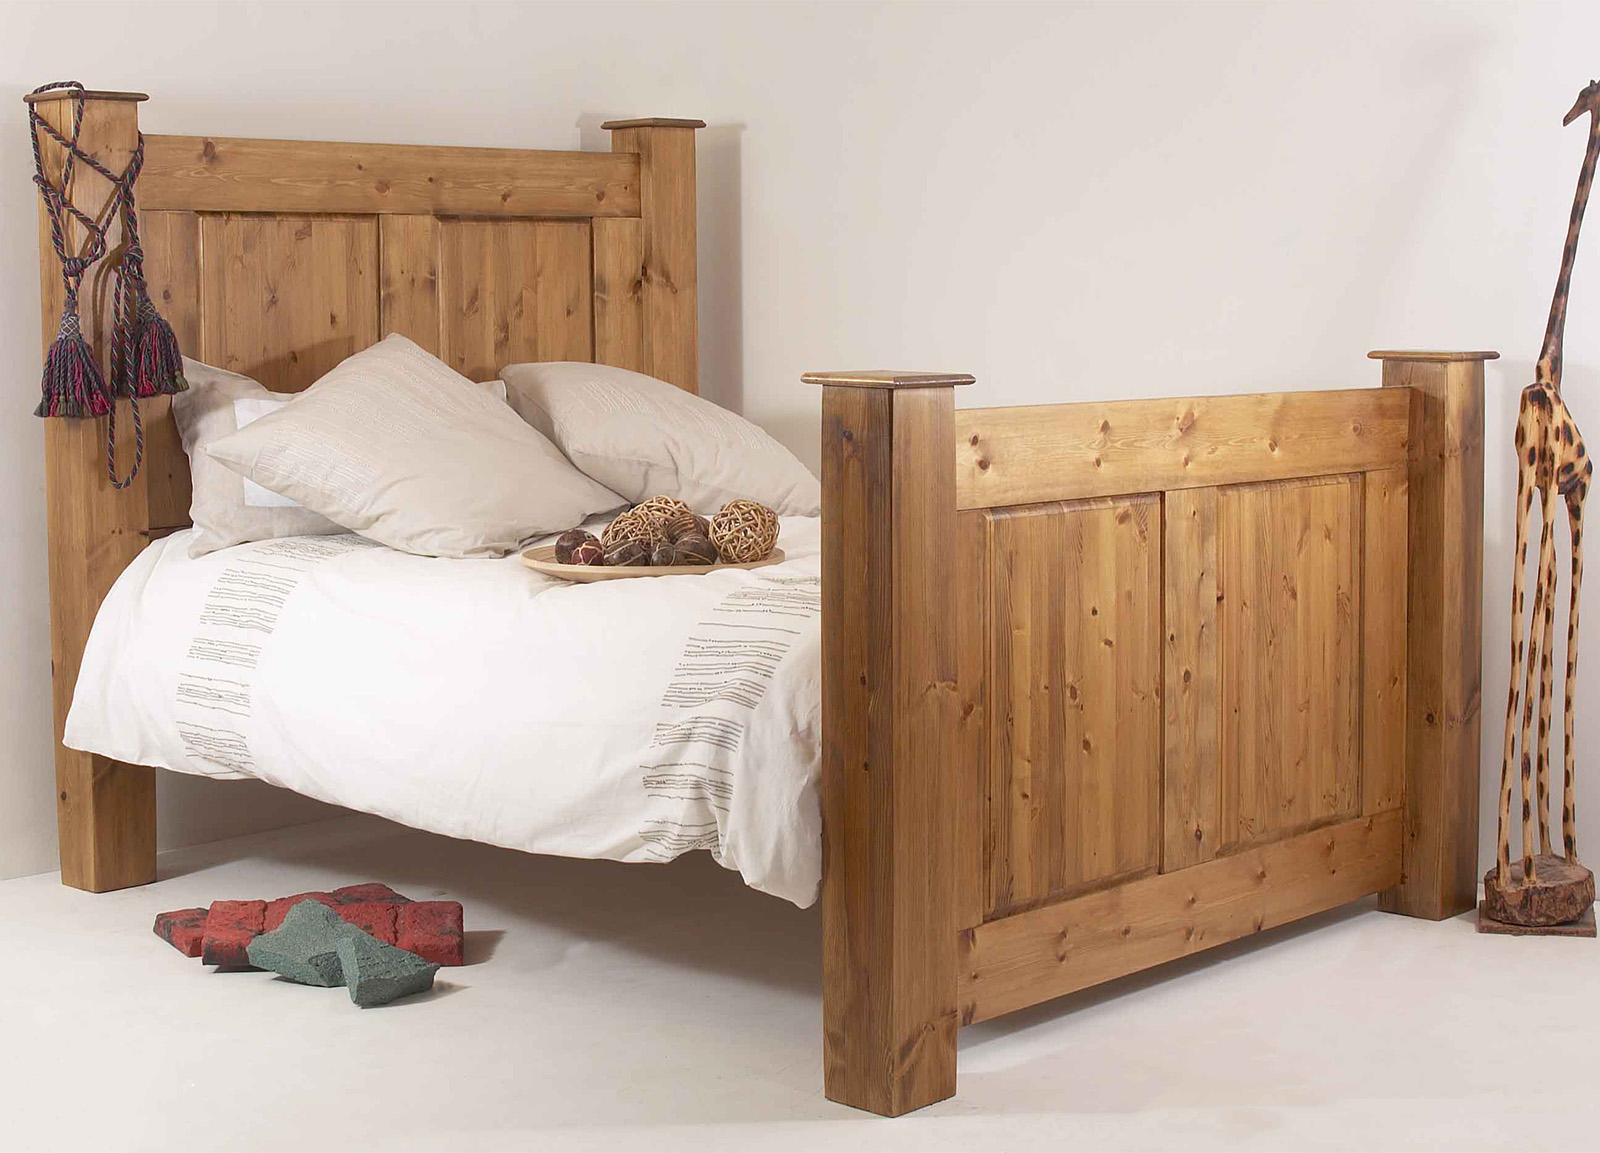 Regency Bedroom Furniture Realwoods Solid Pine Bed The Regency Double Super King